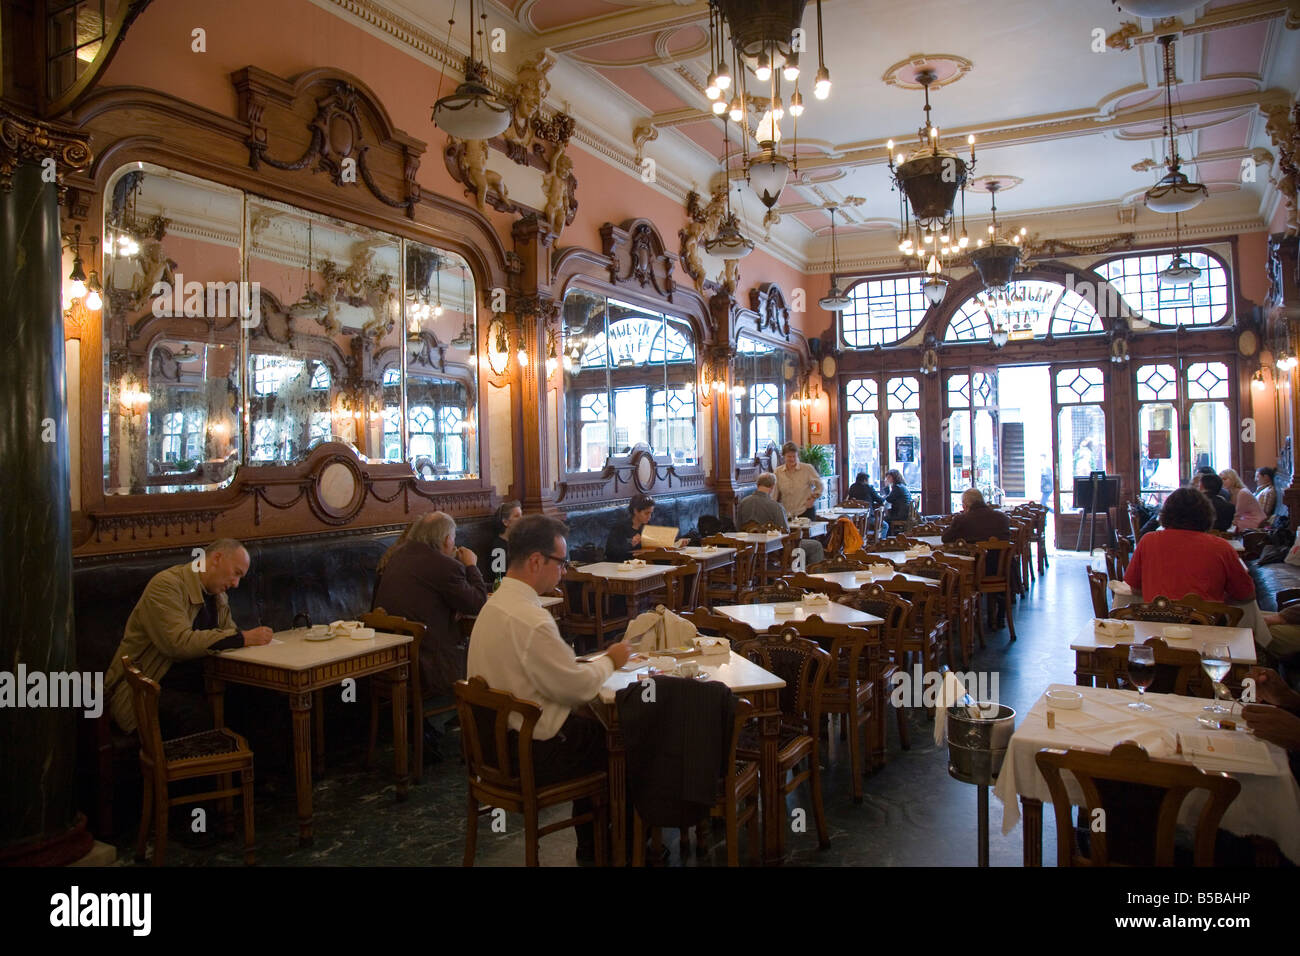 Interior benchwork of the belle epoque art nouveau cafe majestic stock phot - Belle epoque interiors ...